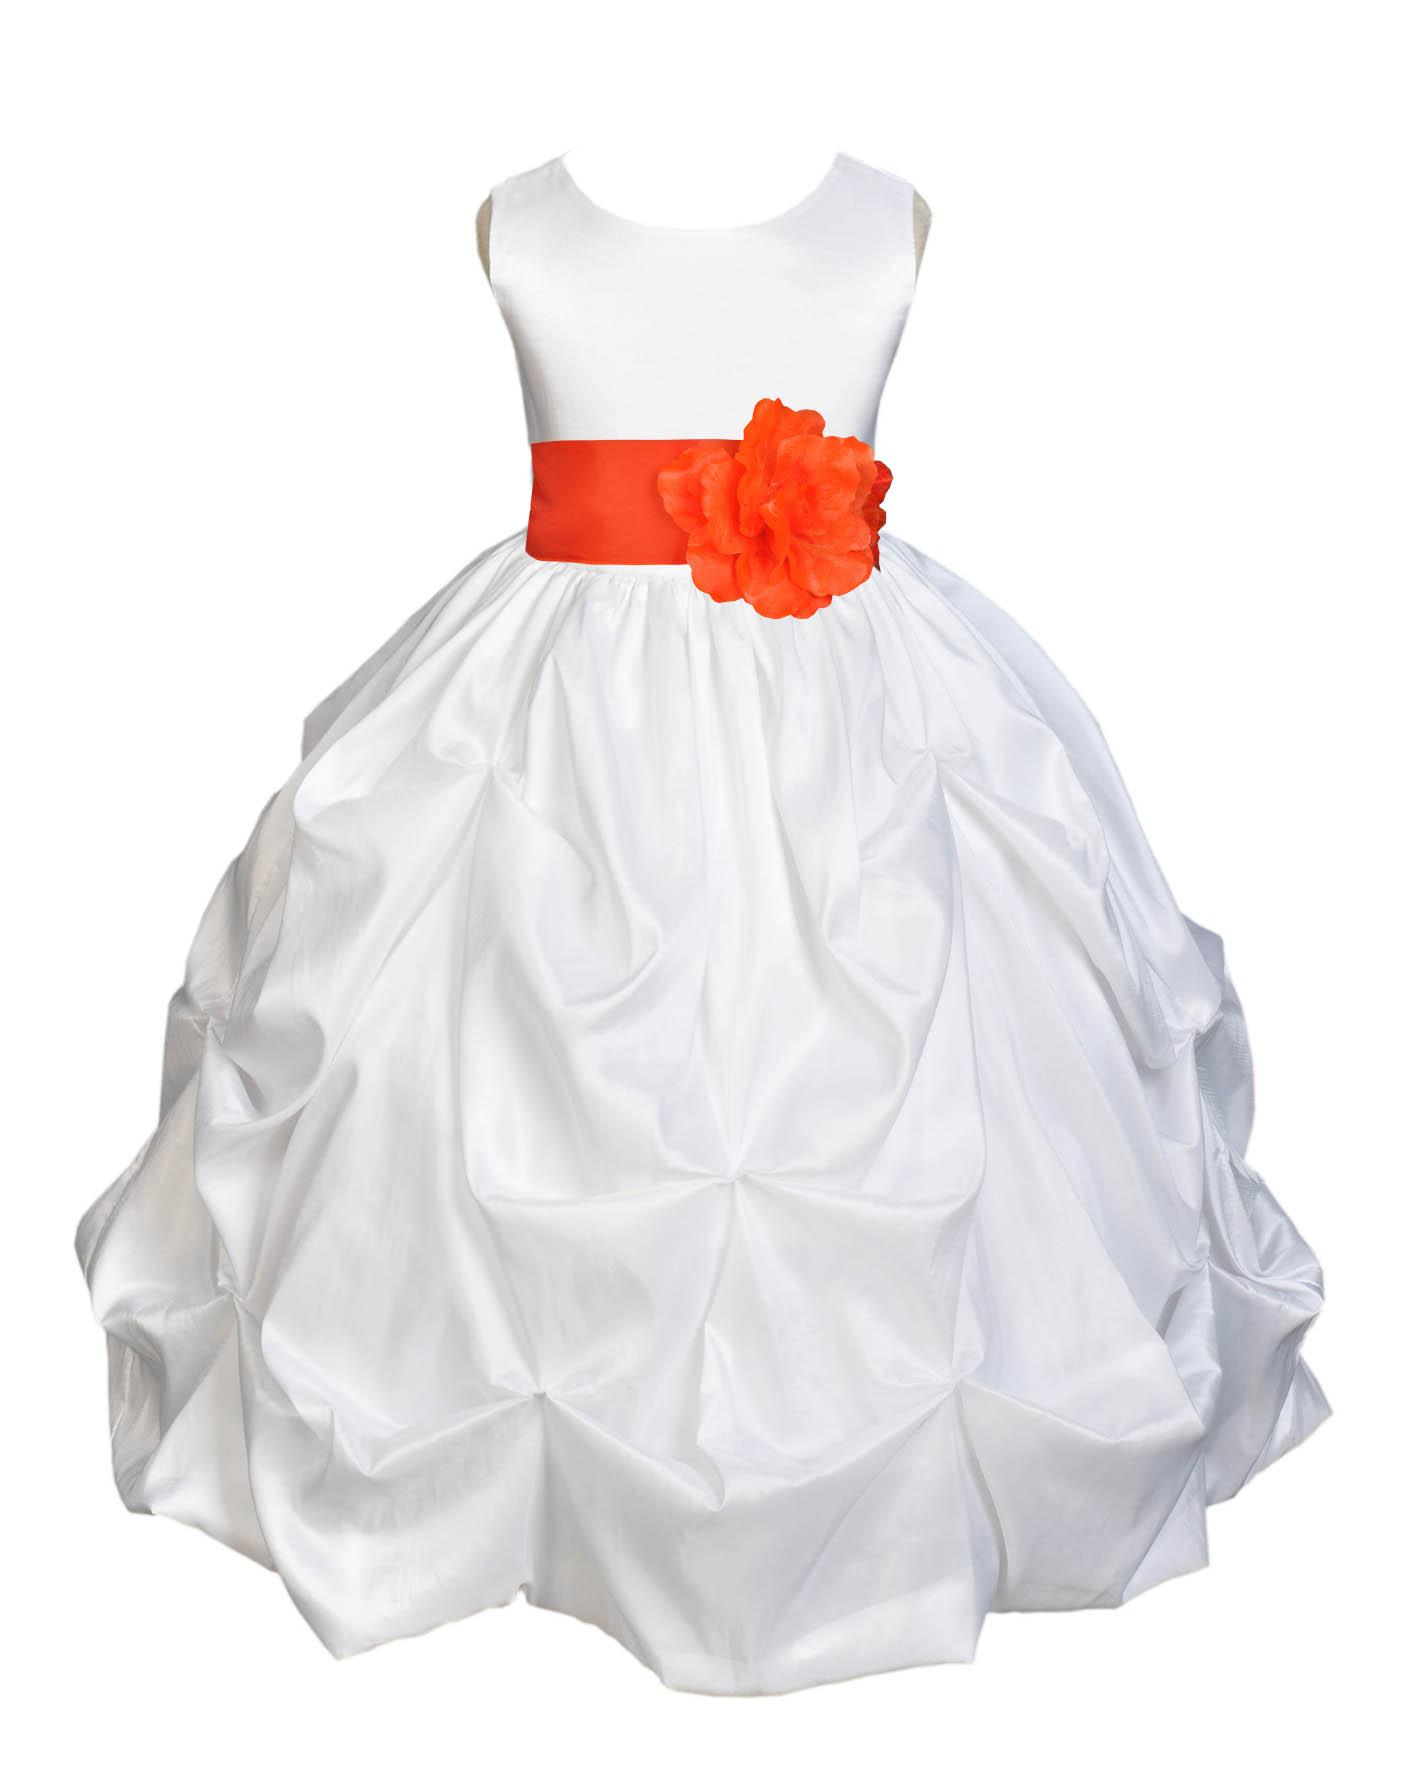 Ekidsbridal Taffeta Bubble Pick-up White Flower Girl Dress Weddings Summer Easter Dress Special Occasions Pageant Toddler Girl's Clothing Holiday Bridal Baptism Junior Bridesmaid First Communion 301S